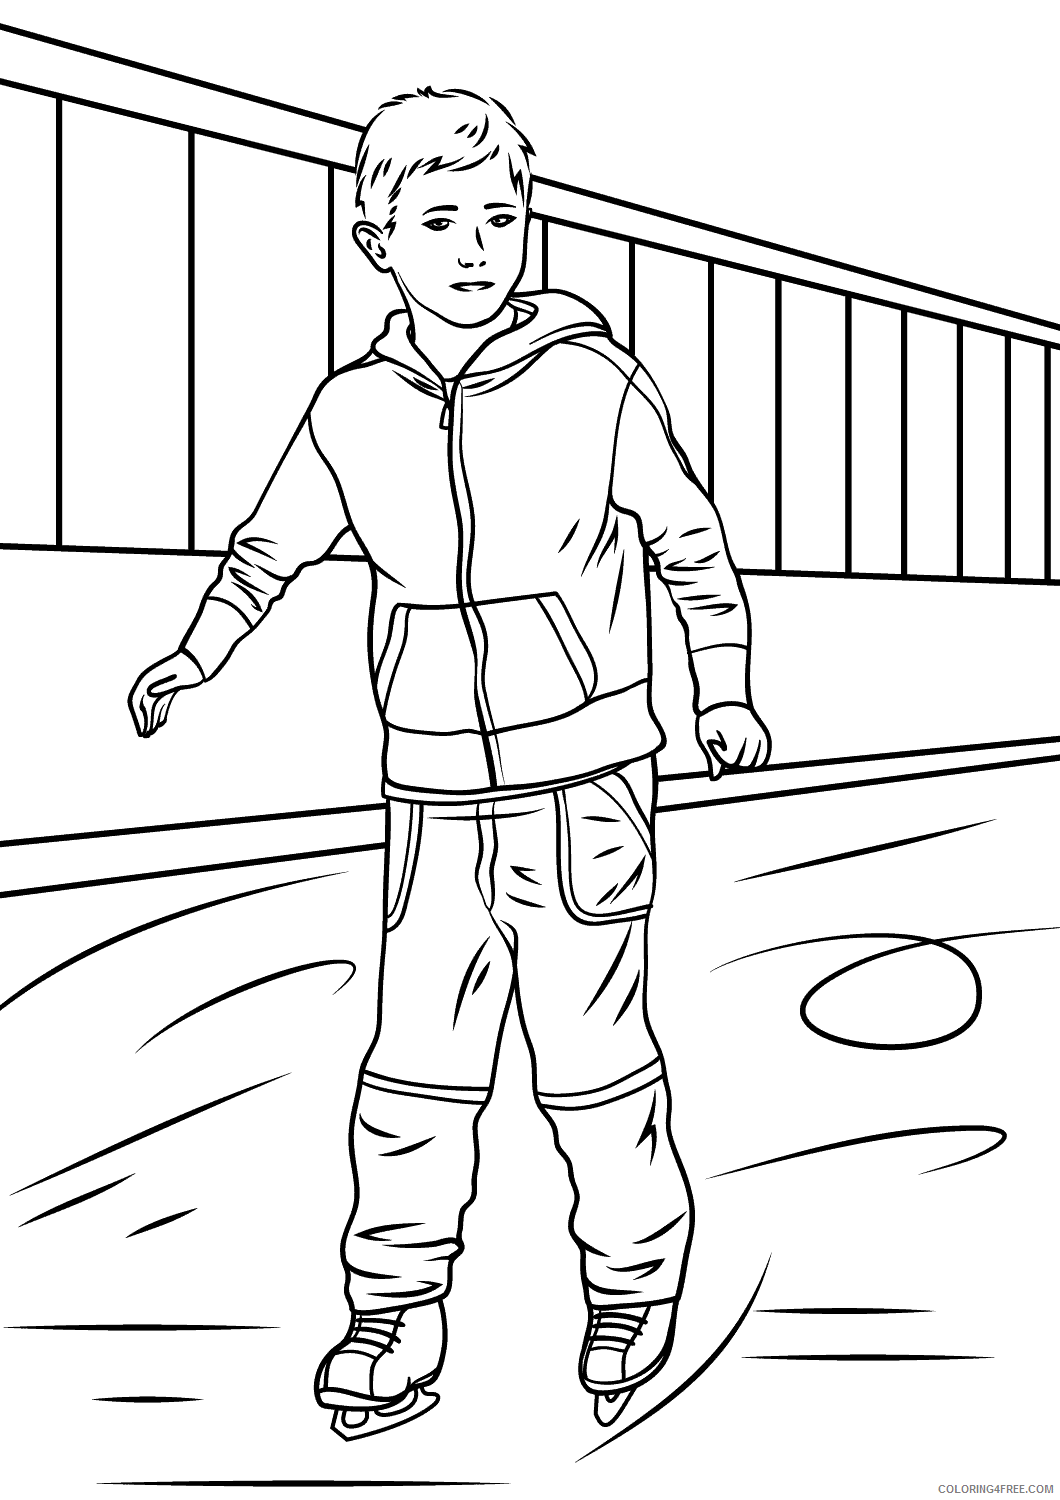 Ice Skating Coloring Pages boy ice skater Printable 2021 3490 Coloring4free